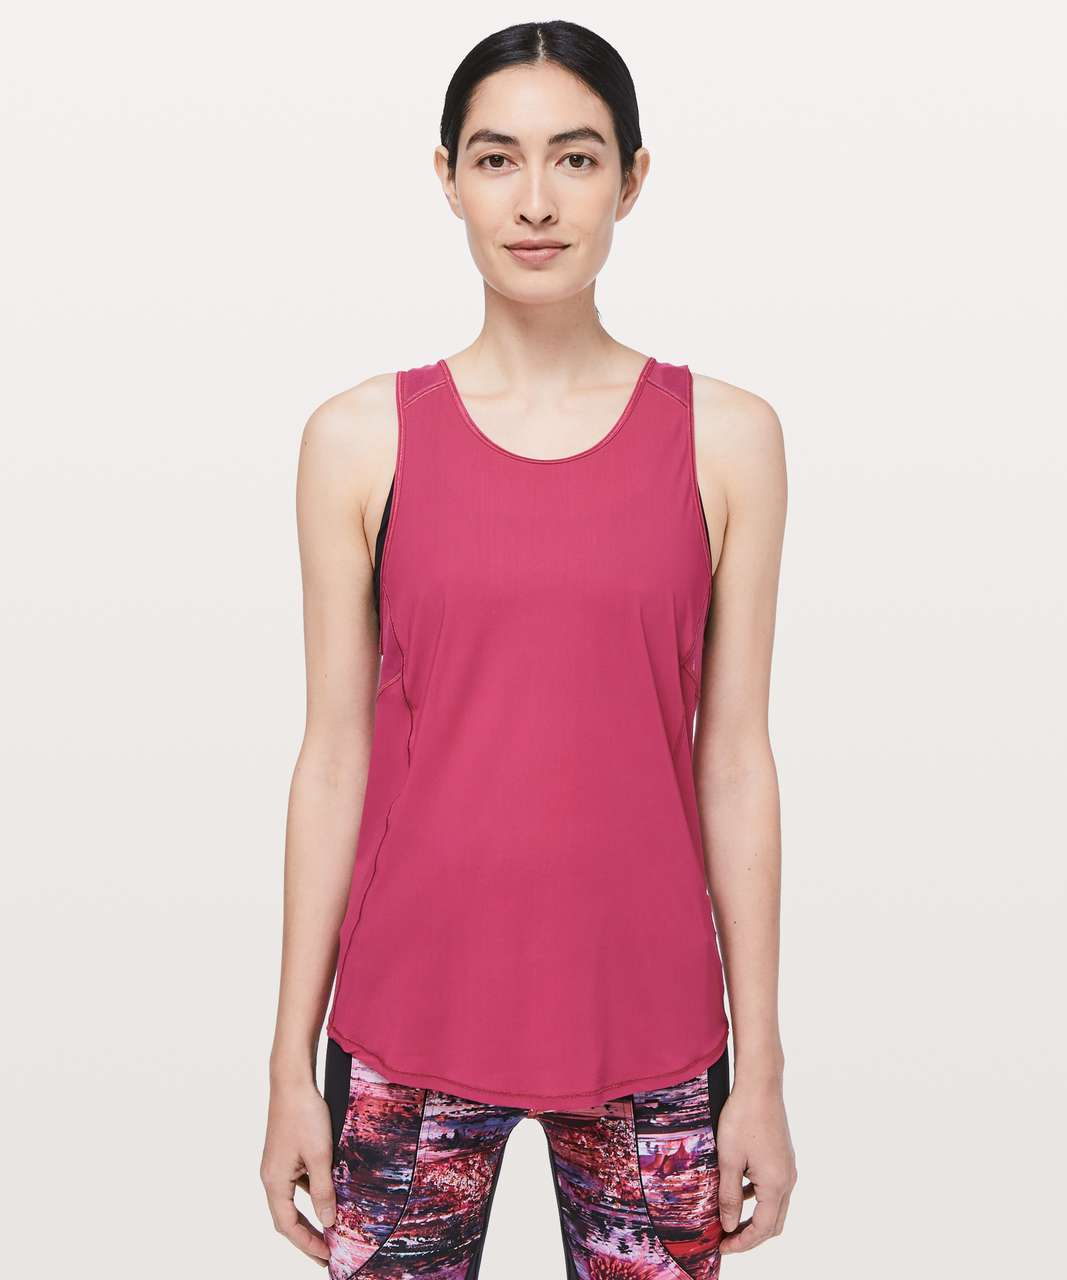 Lululemon Sculpt Tank *Tie Back - Violet Red